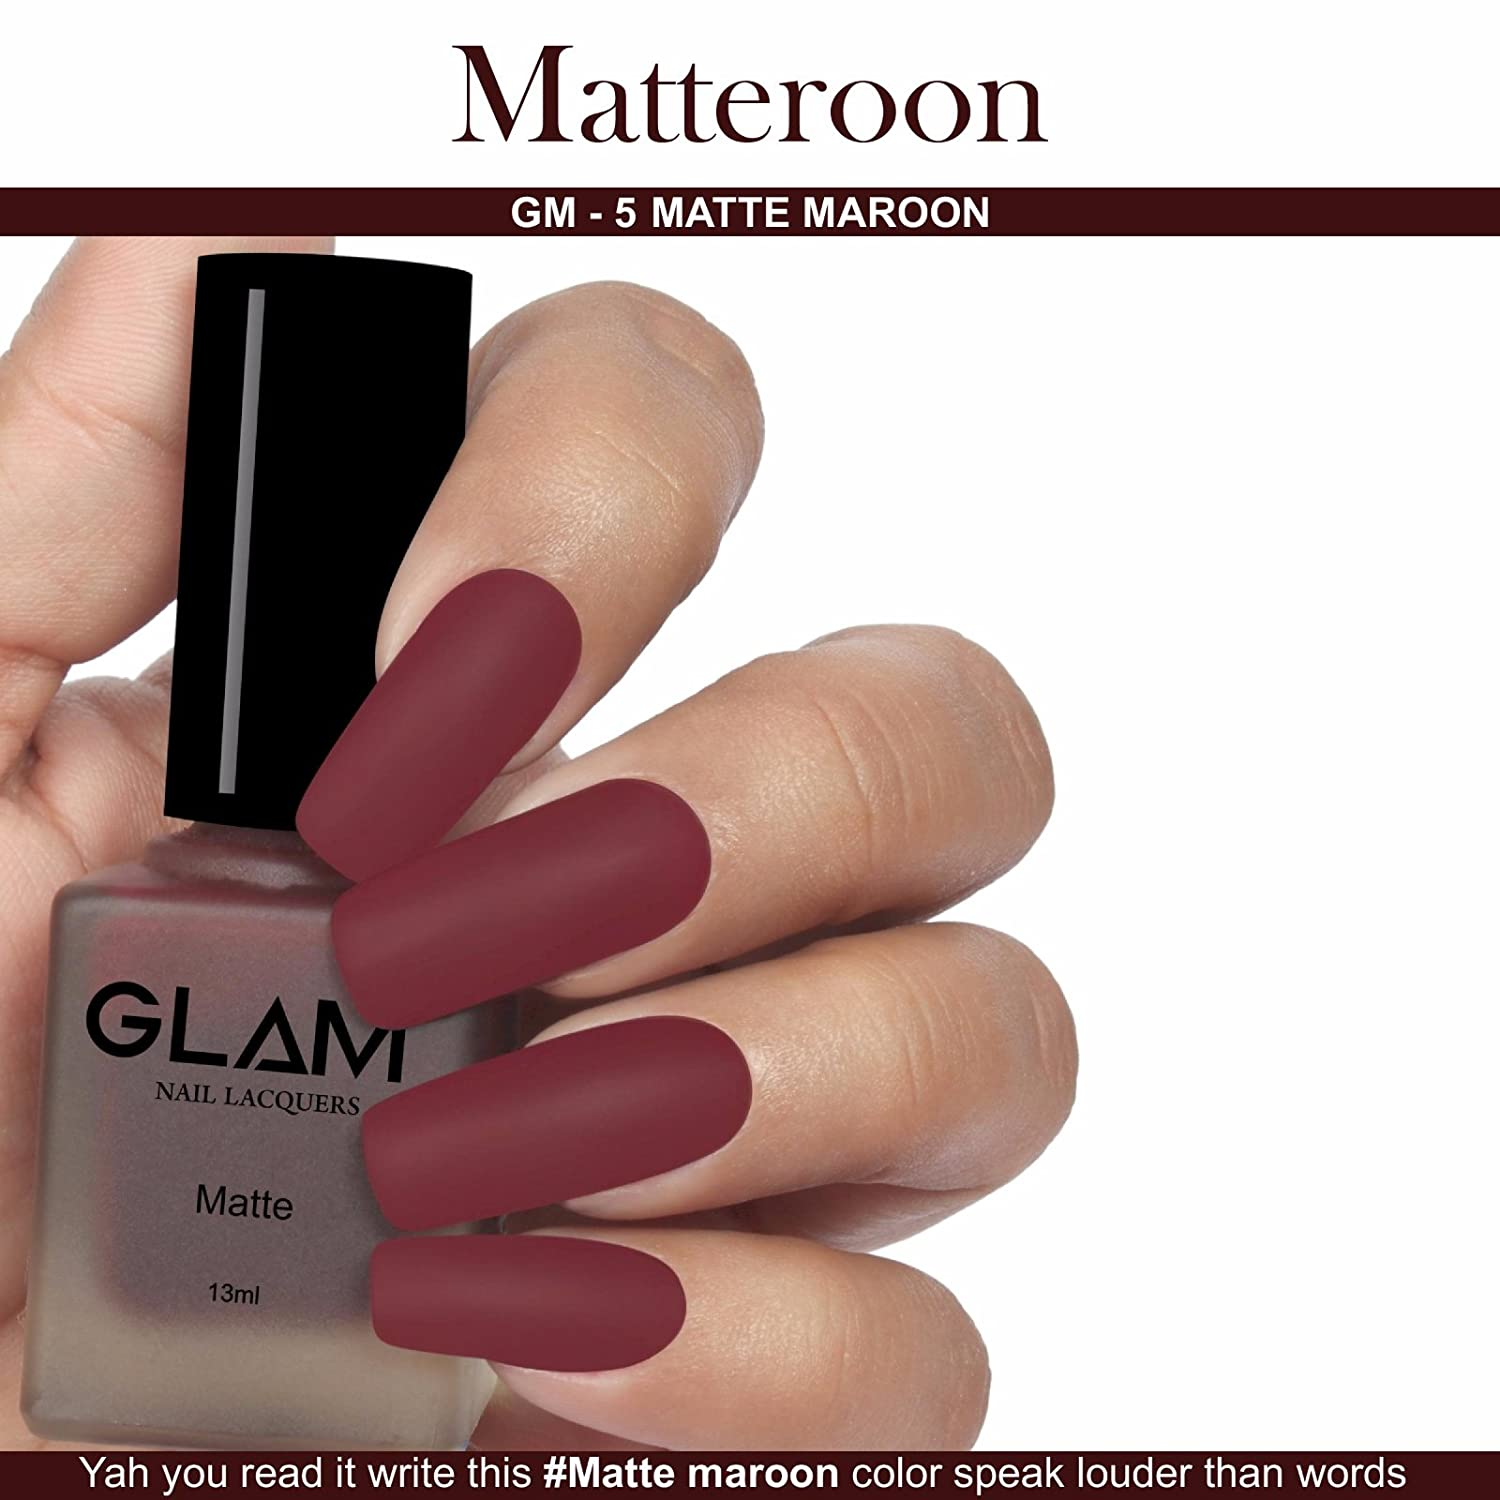 Buy Glam Matte Nail Lacquers - Matteroon / Gm-5 - 13ml Online at Low ...